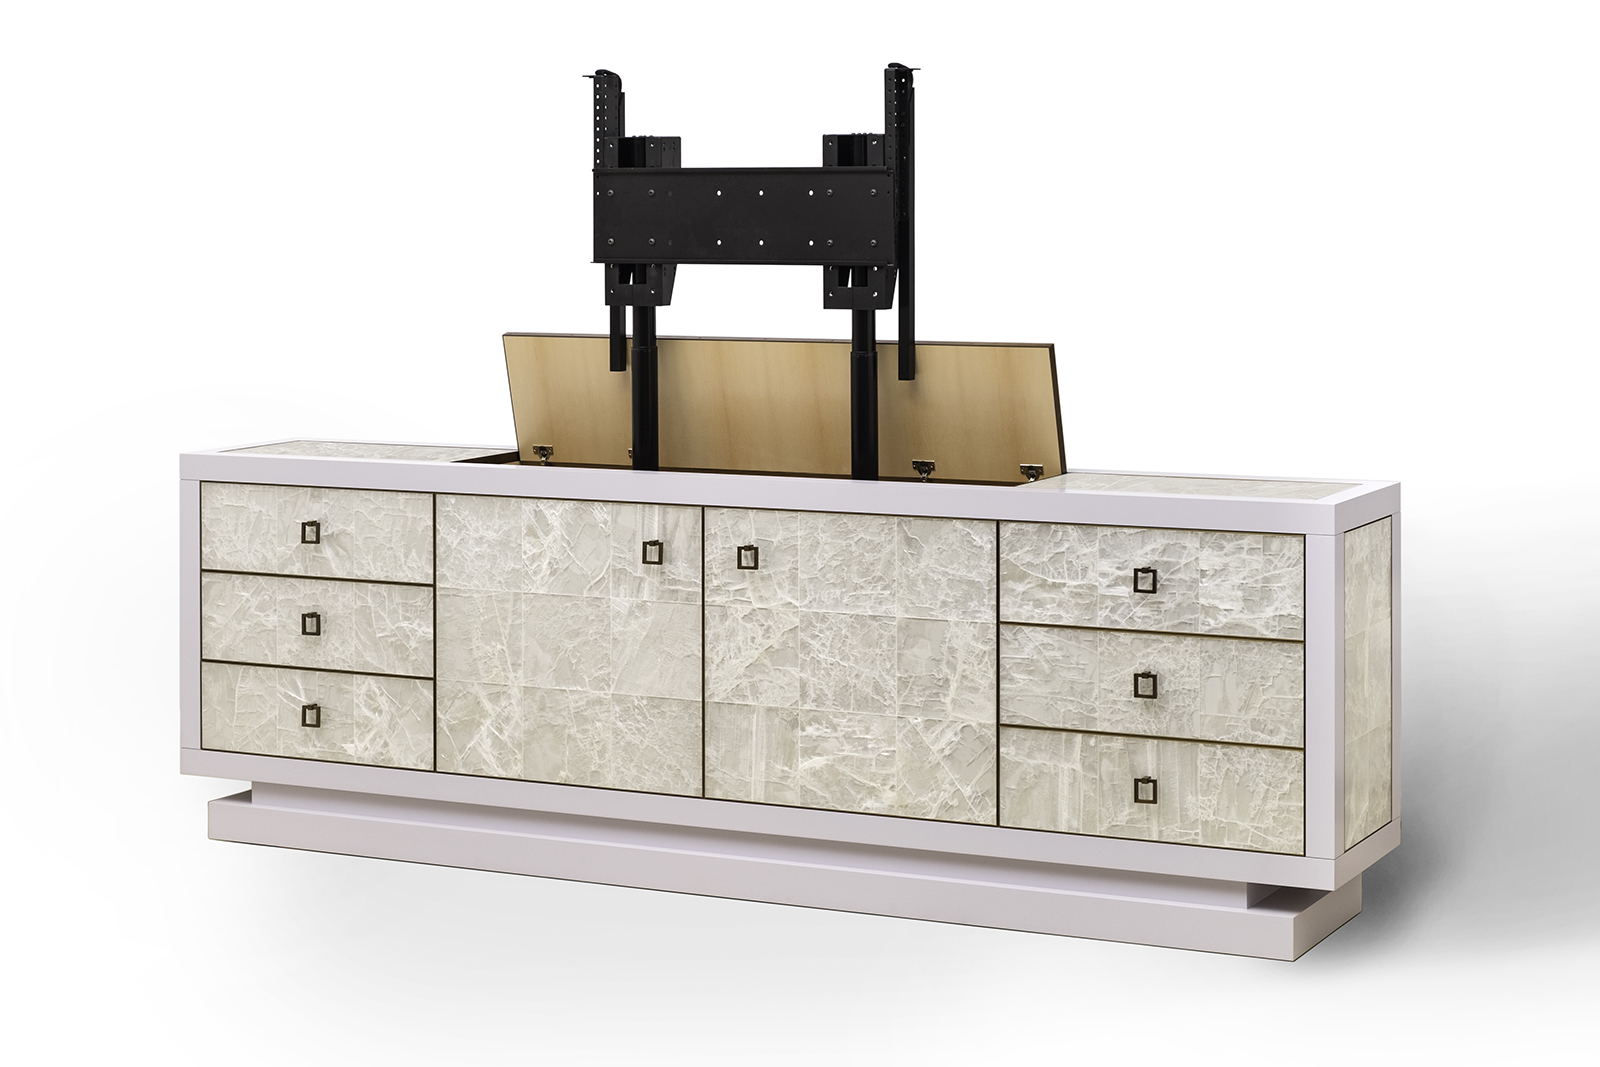 Sideboard Tv Lift sideboard w/ tv lift in gypsum, lacquer & bronze | atelier viollet